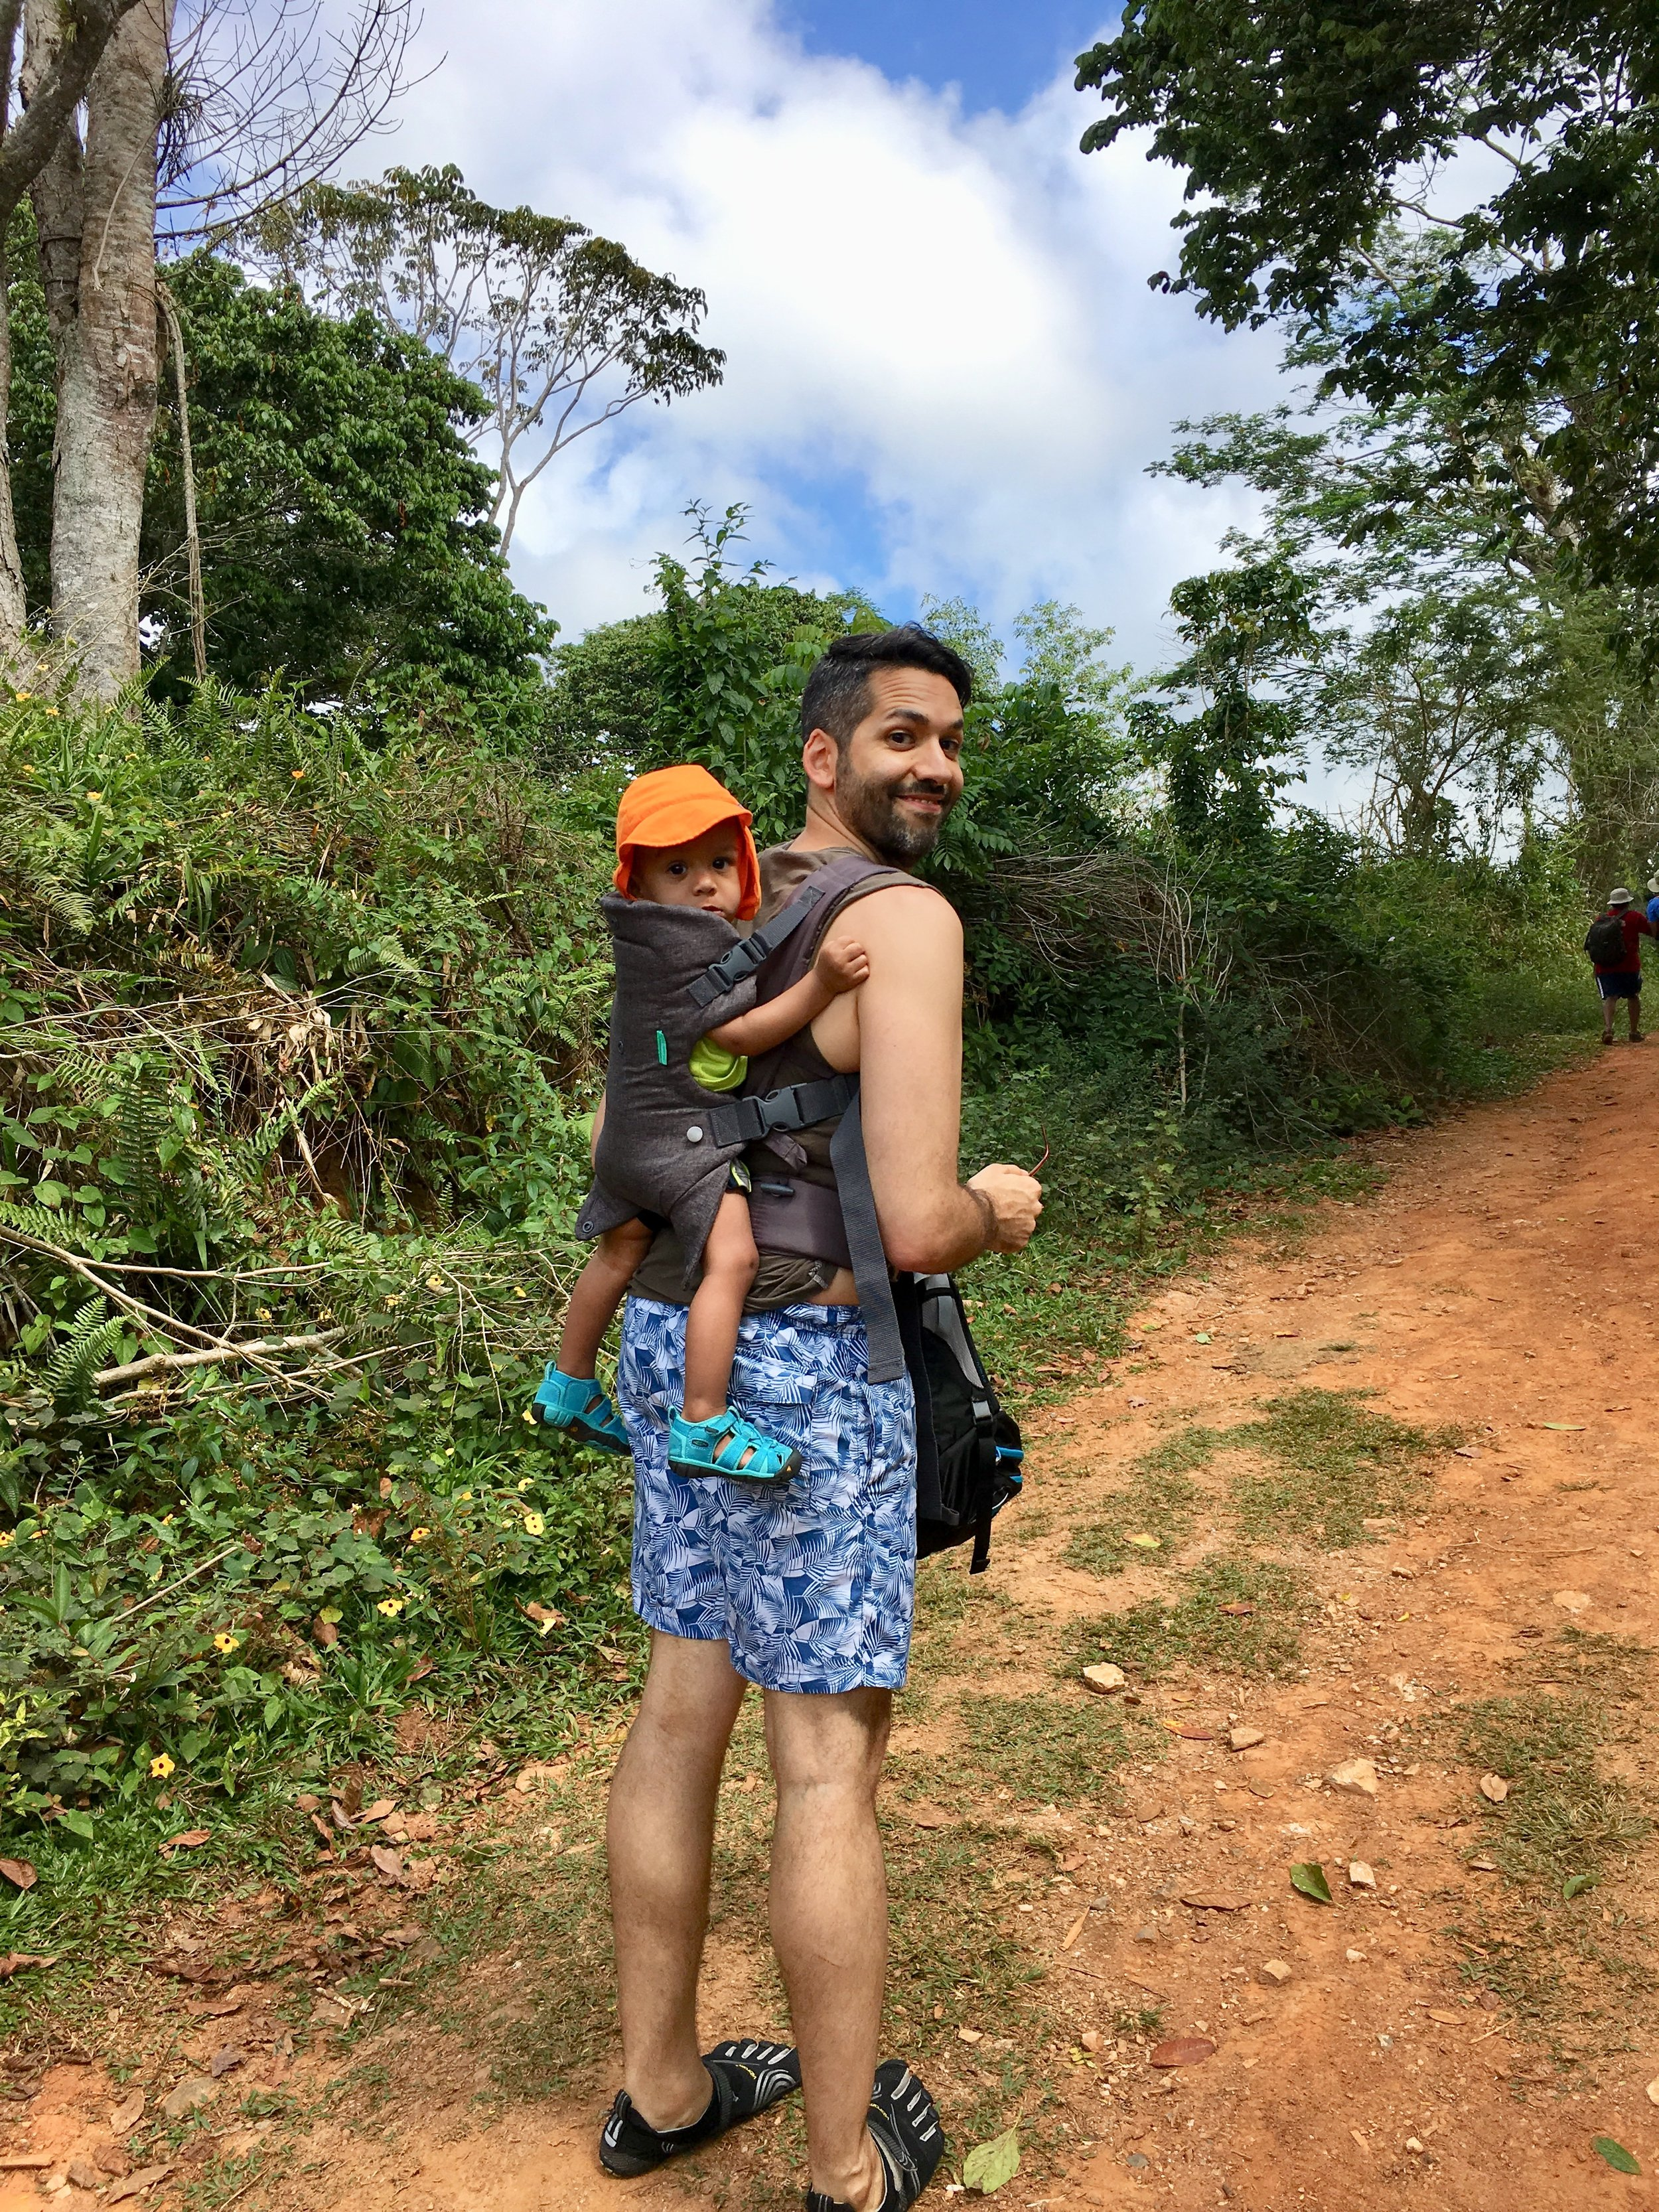 Baby G on his first hike to a waterfall in Topes de Collantes nature reserve park in the Escambray Mountains in Cuba